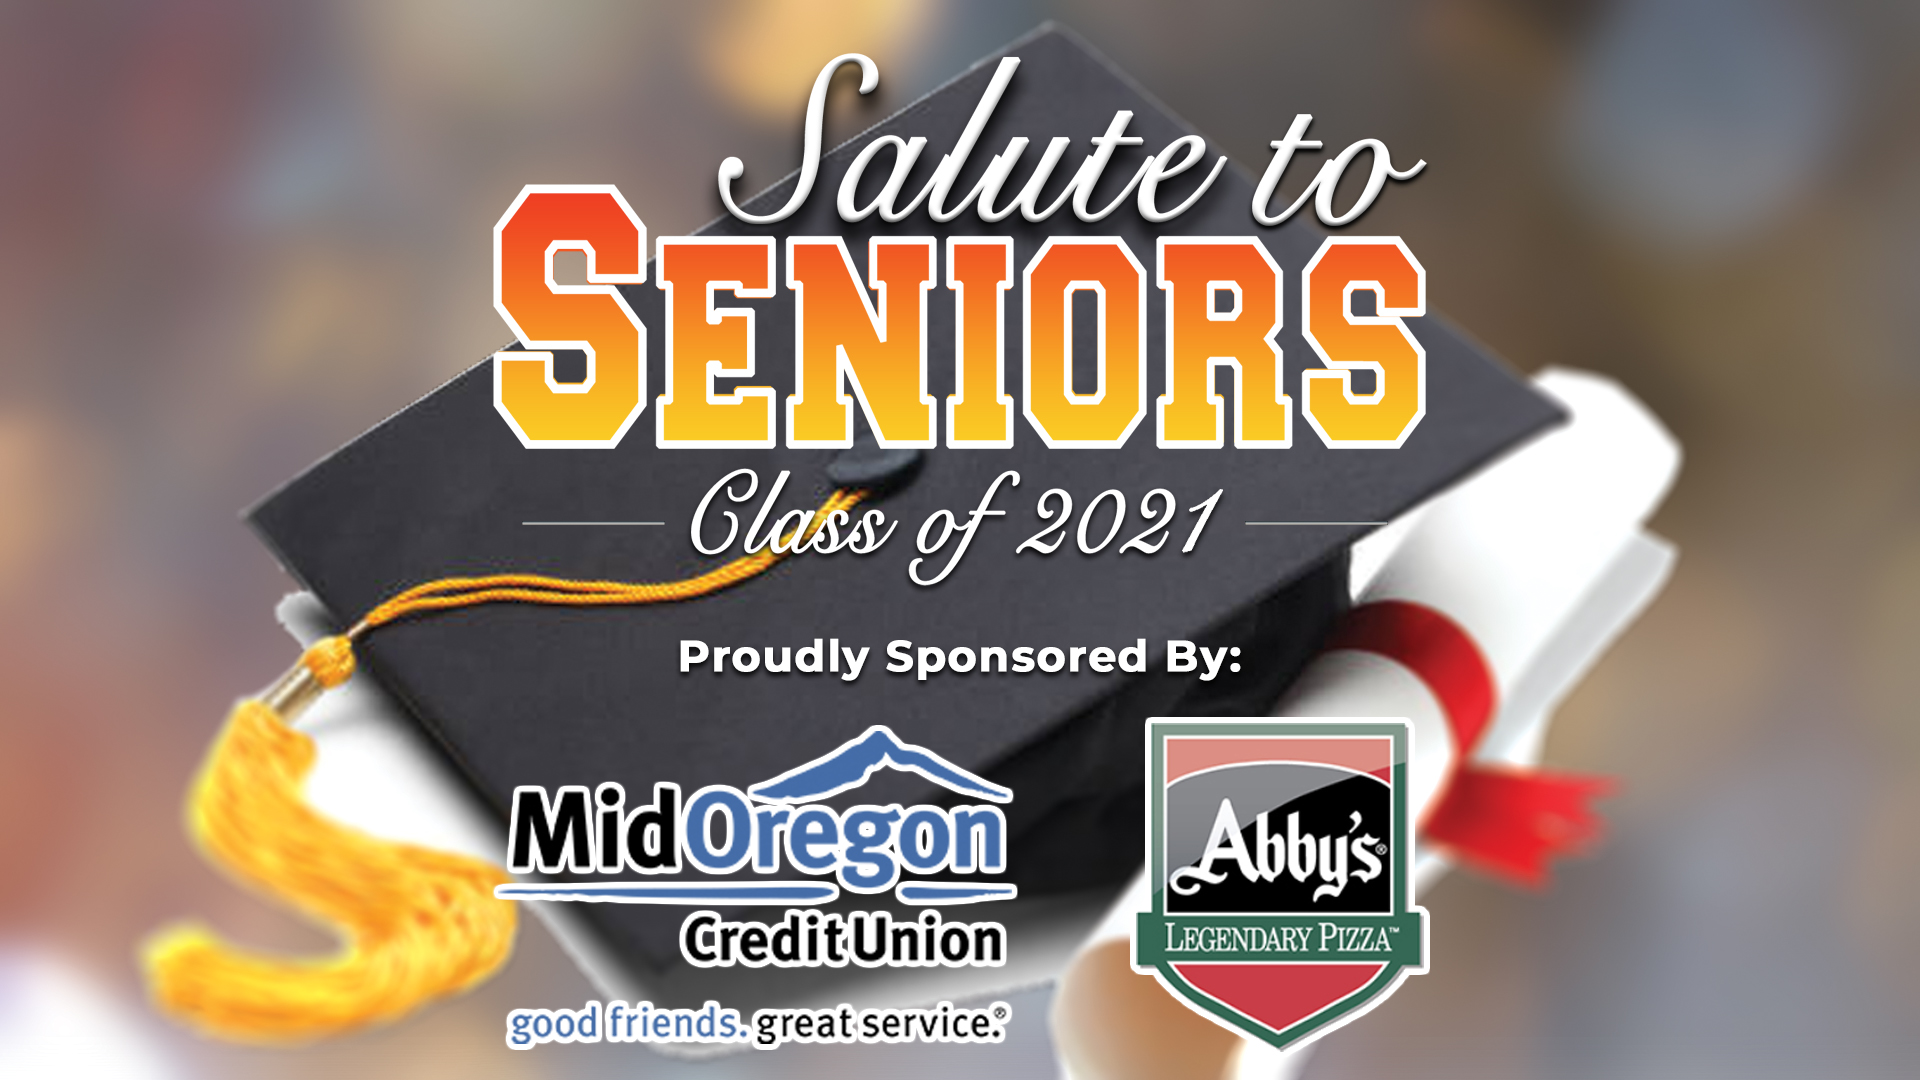 NewsChannel 21 Salute to Seniors - Class of 2021 Proudly Sponsored by MidOregon Credit Union and Abby's Legendary Pizza